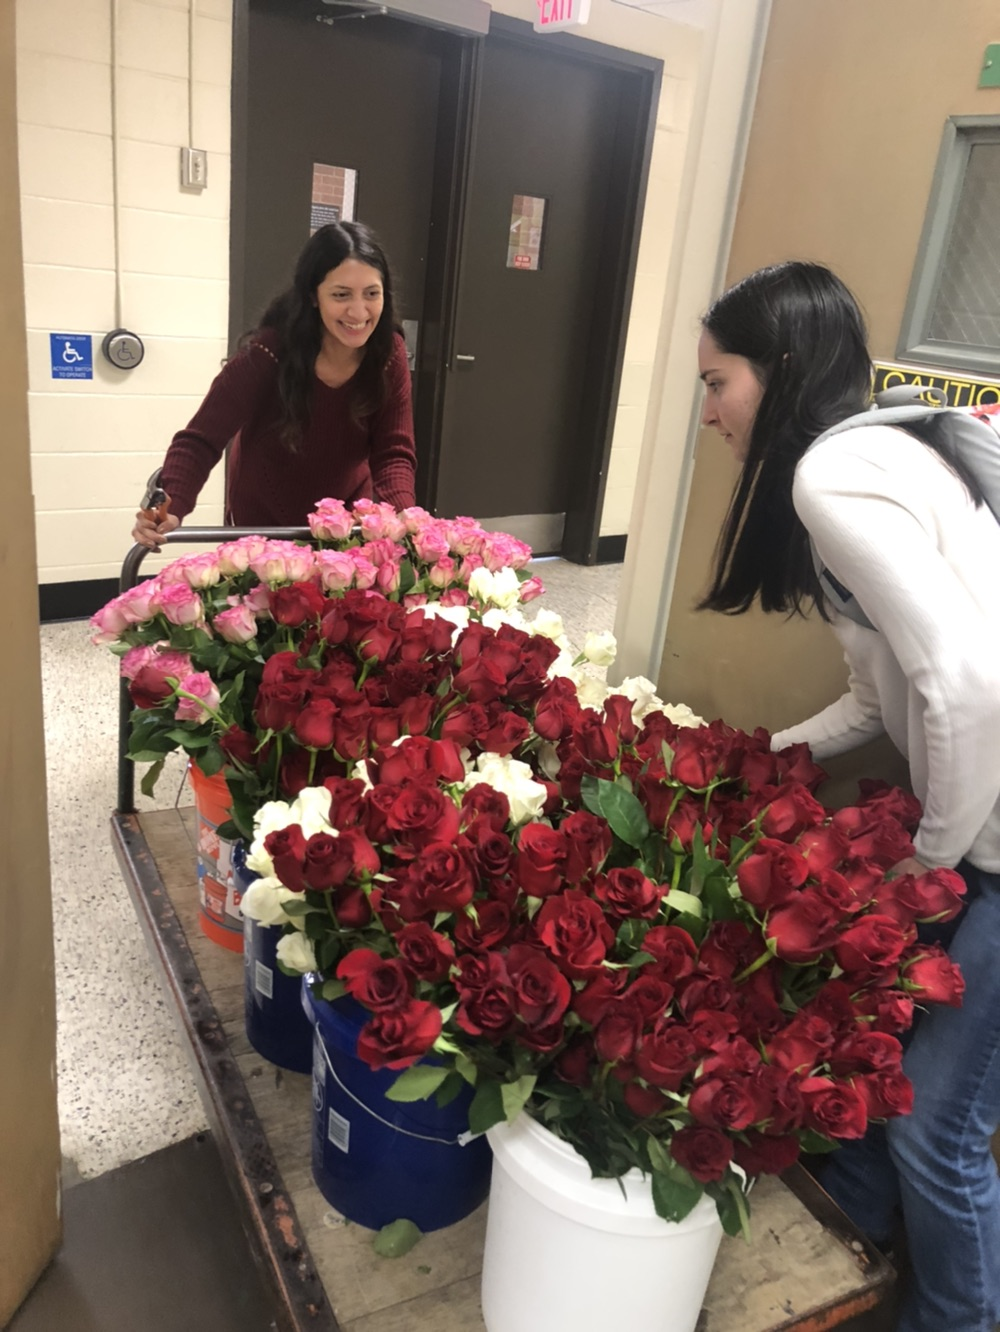 Members of the UGA Horticulture Club prepare for the cub's spring rose sale. Each year, club members sell bouquets for Valentine's Day to fundraise for club operations, trips and scholarships. (Photo taken in 2019)